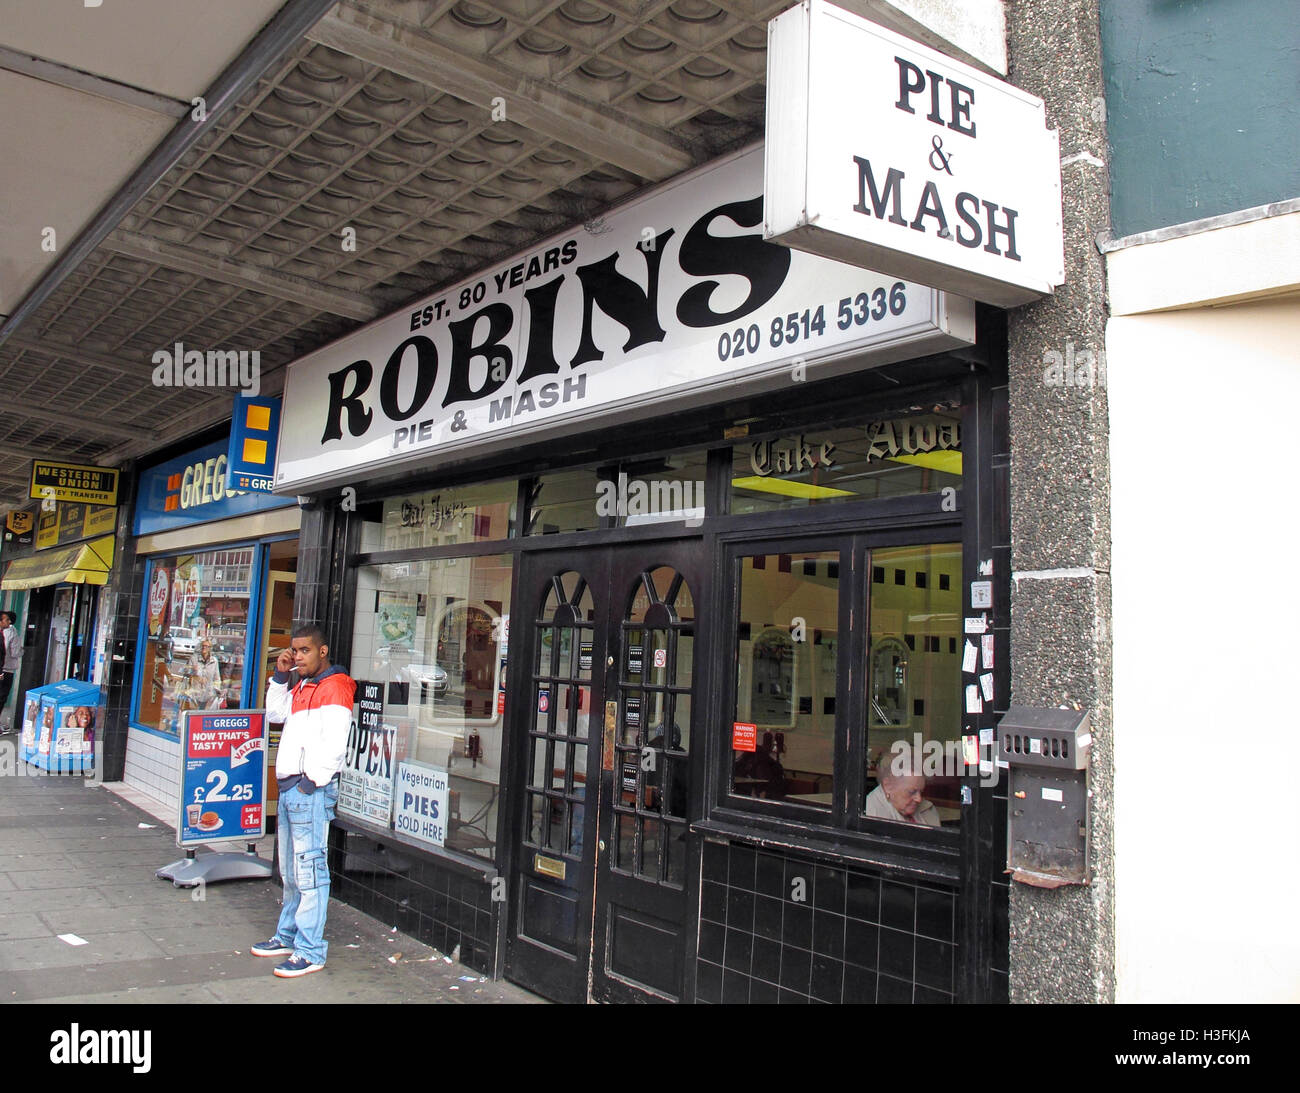 Robins traditional Pie & Mash, Ilford Essex, Greater London, England - Stock Image